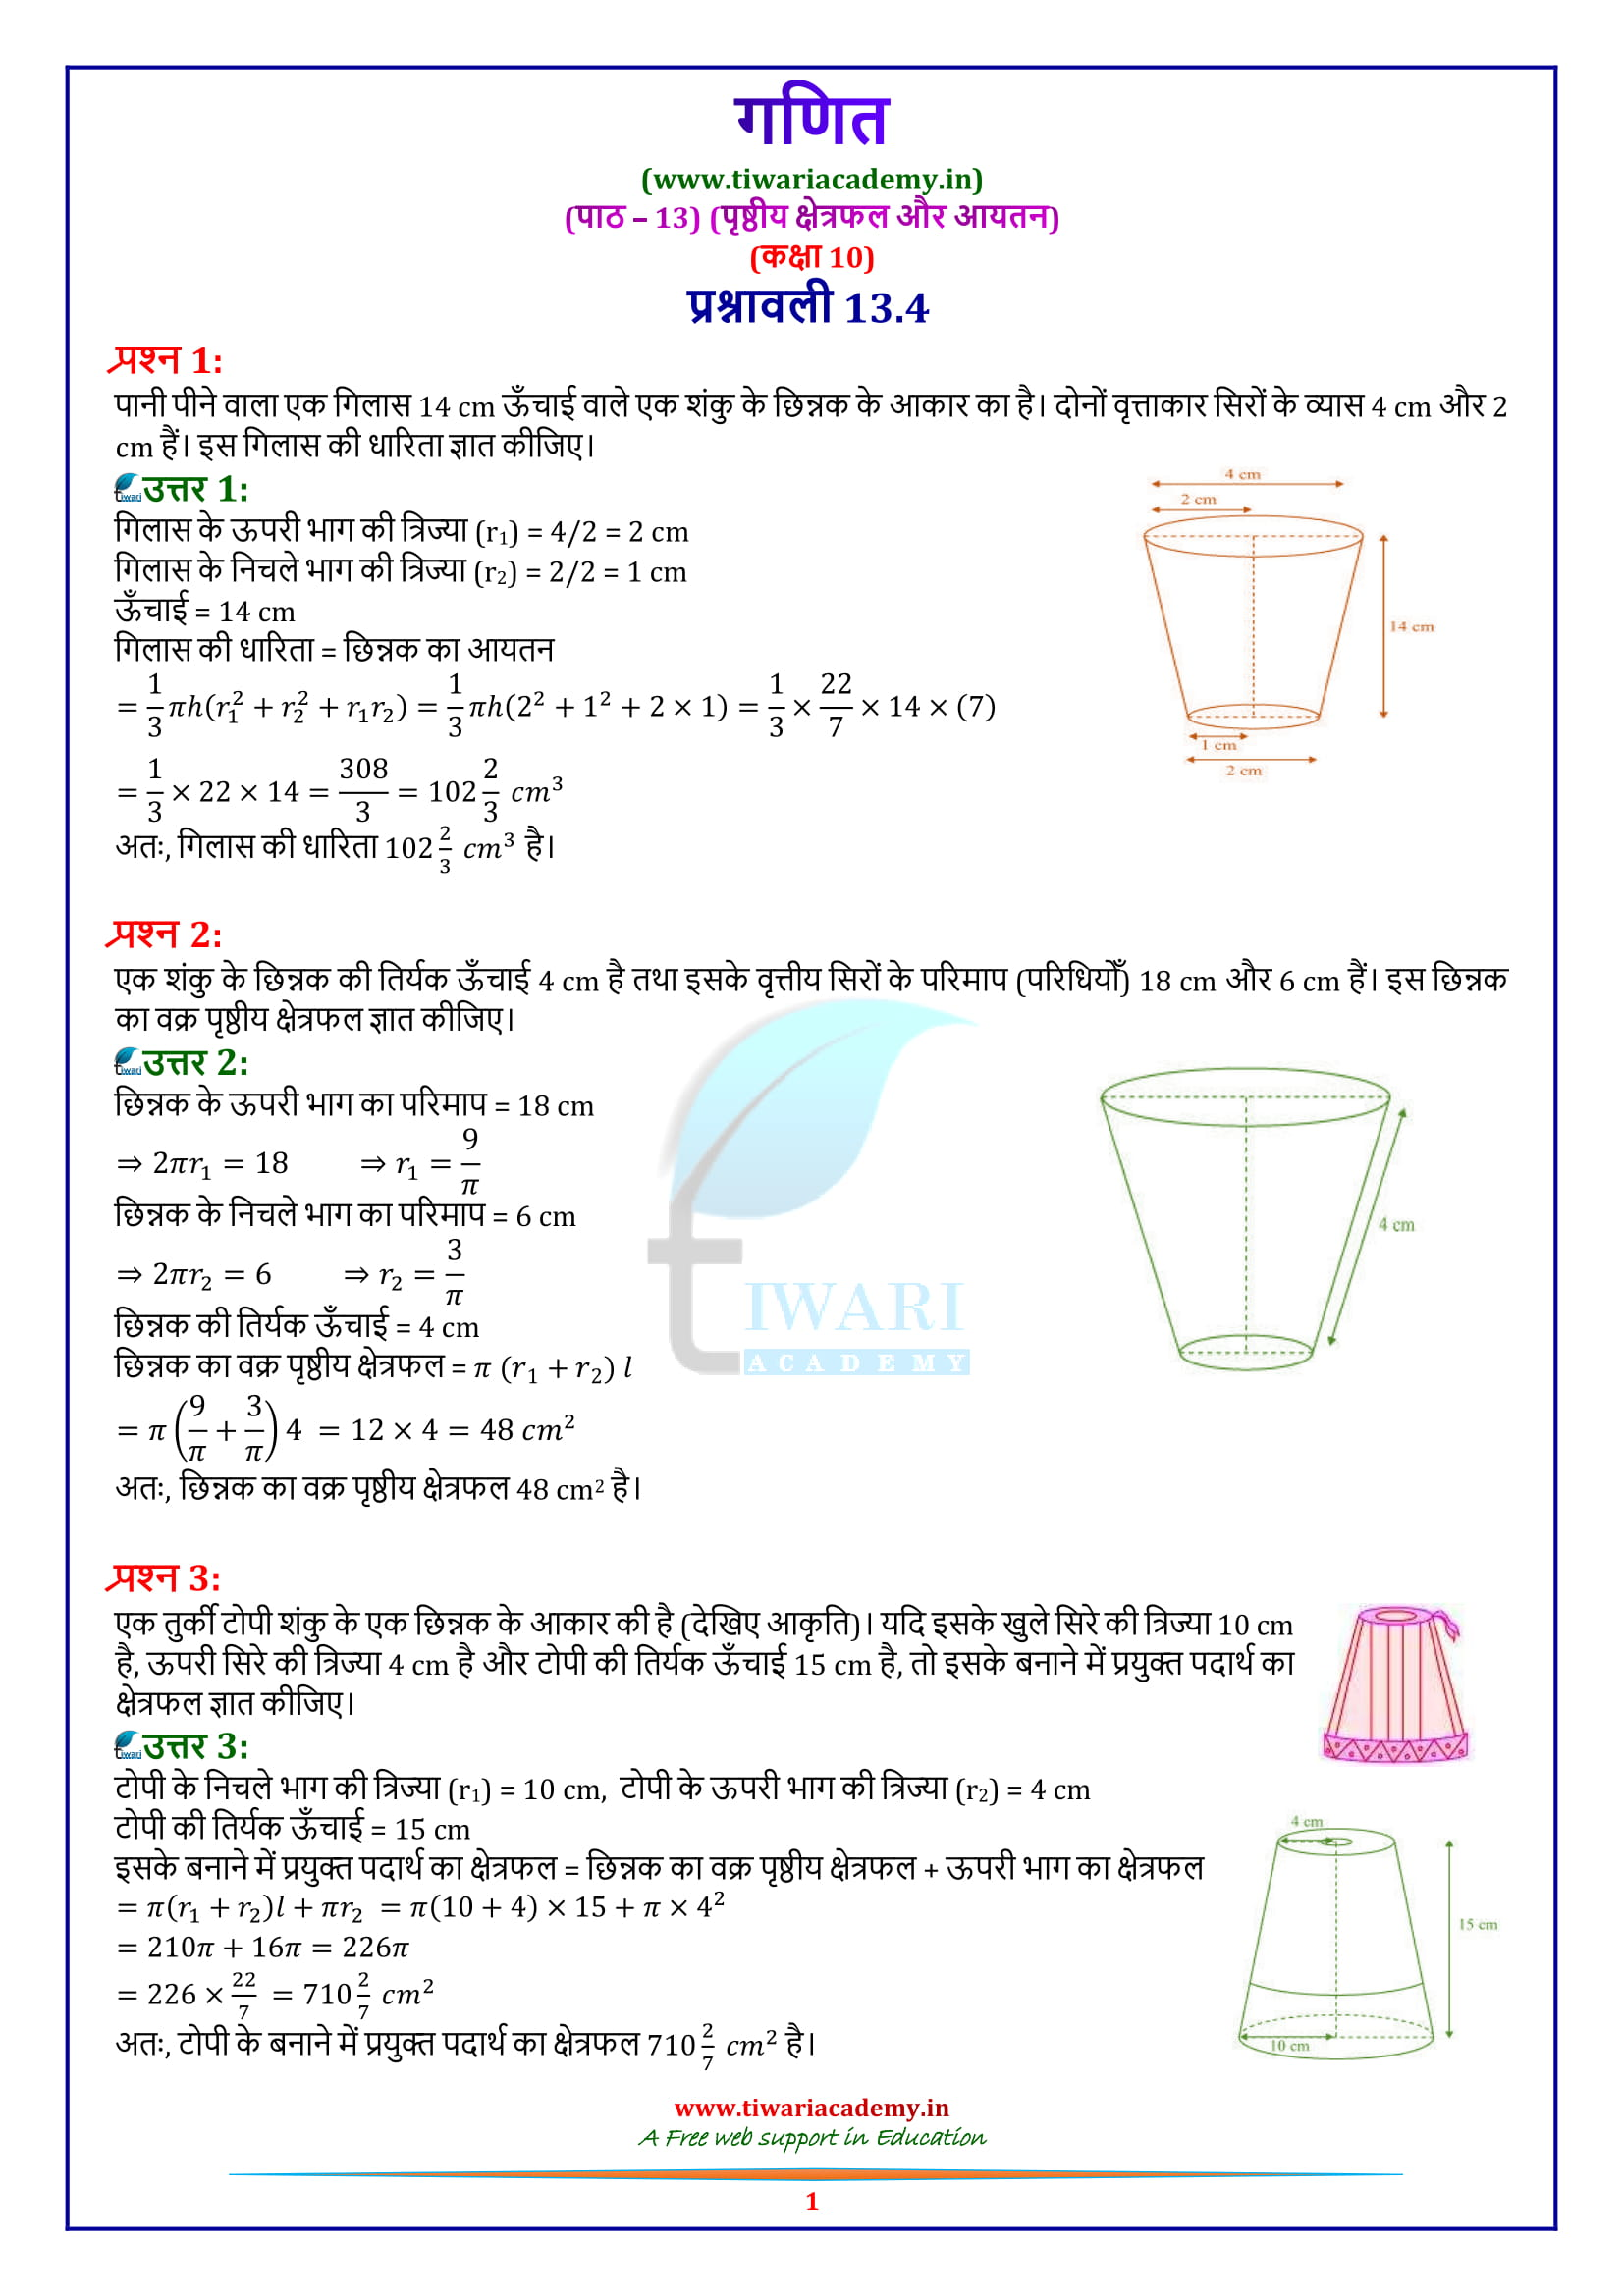 Class 10 Maths Exercise 13.4 solutions and maths guide